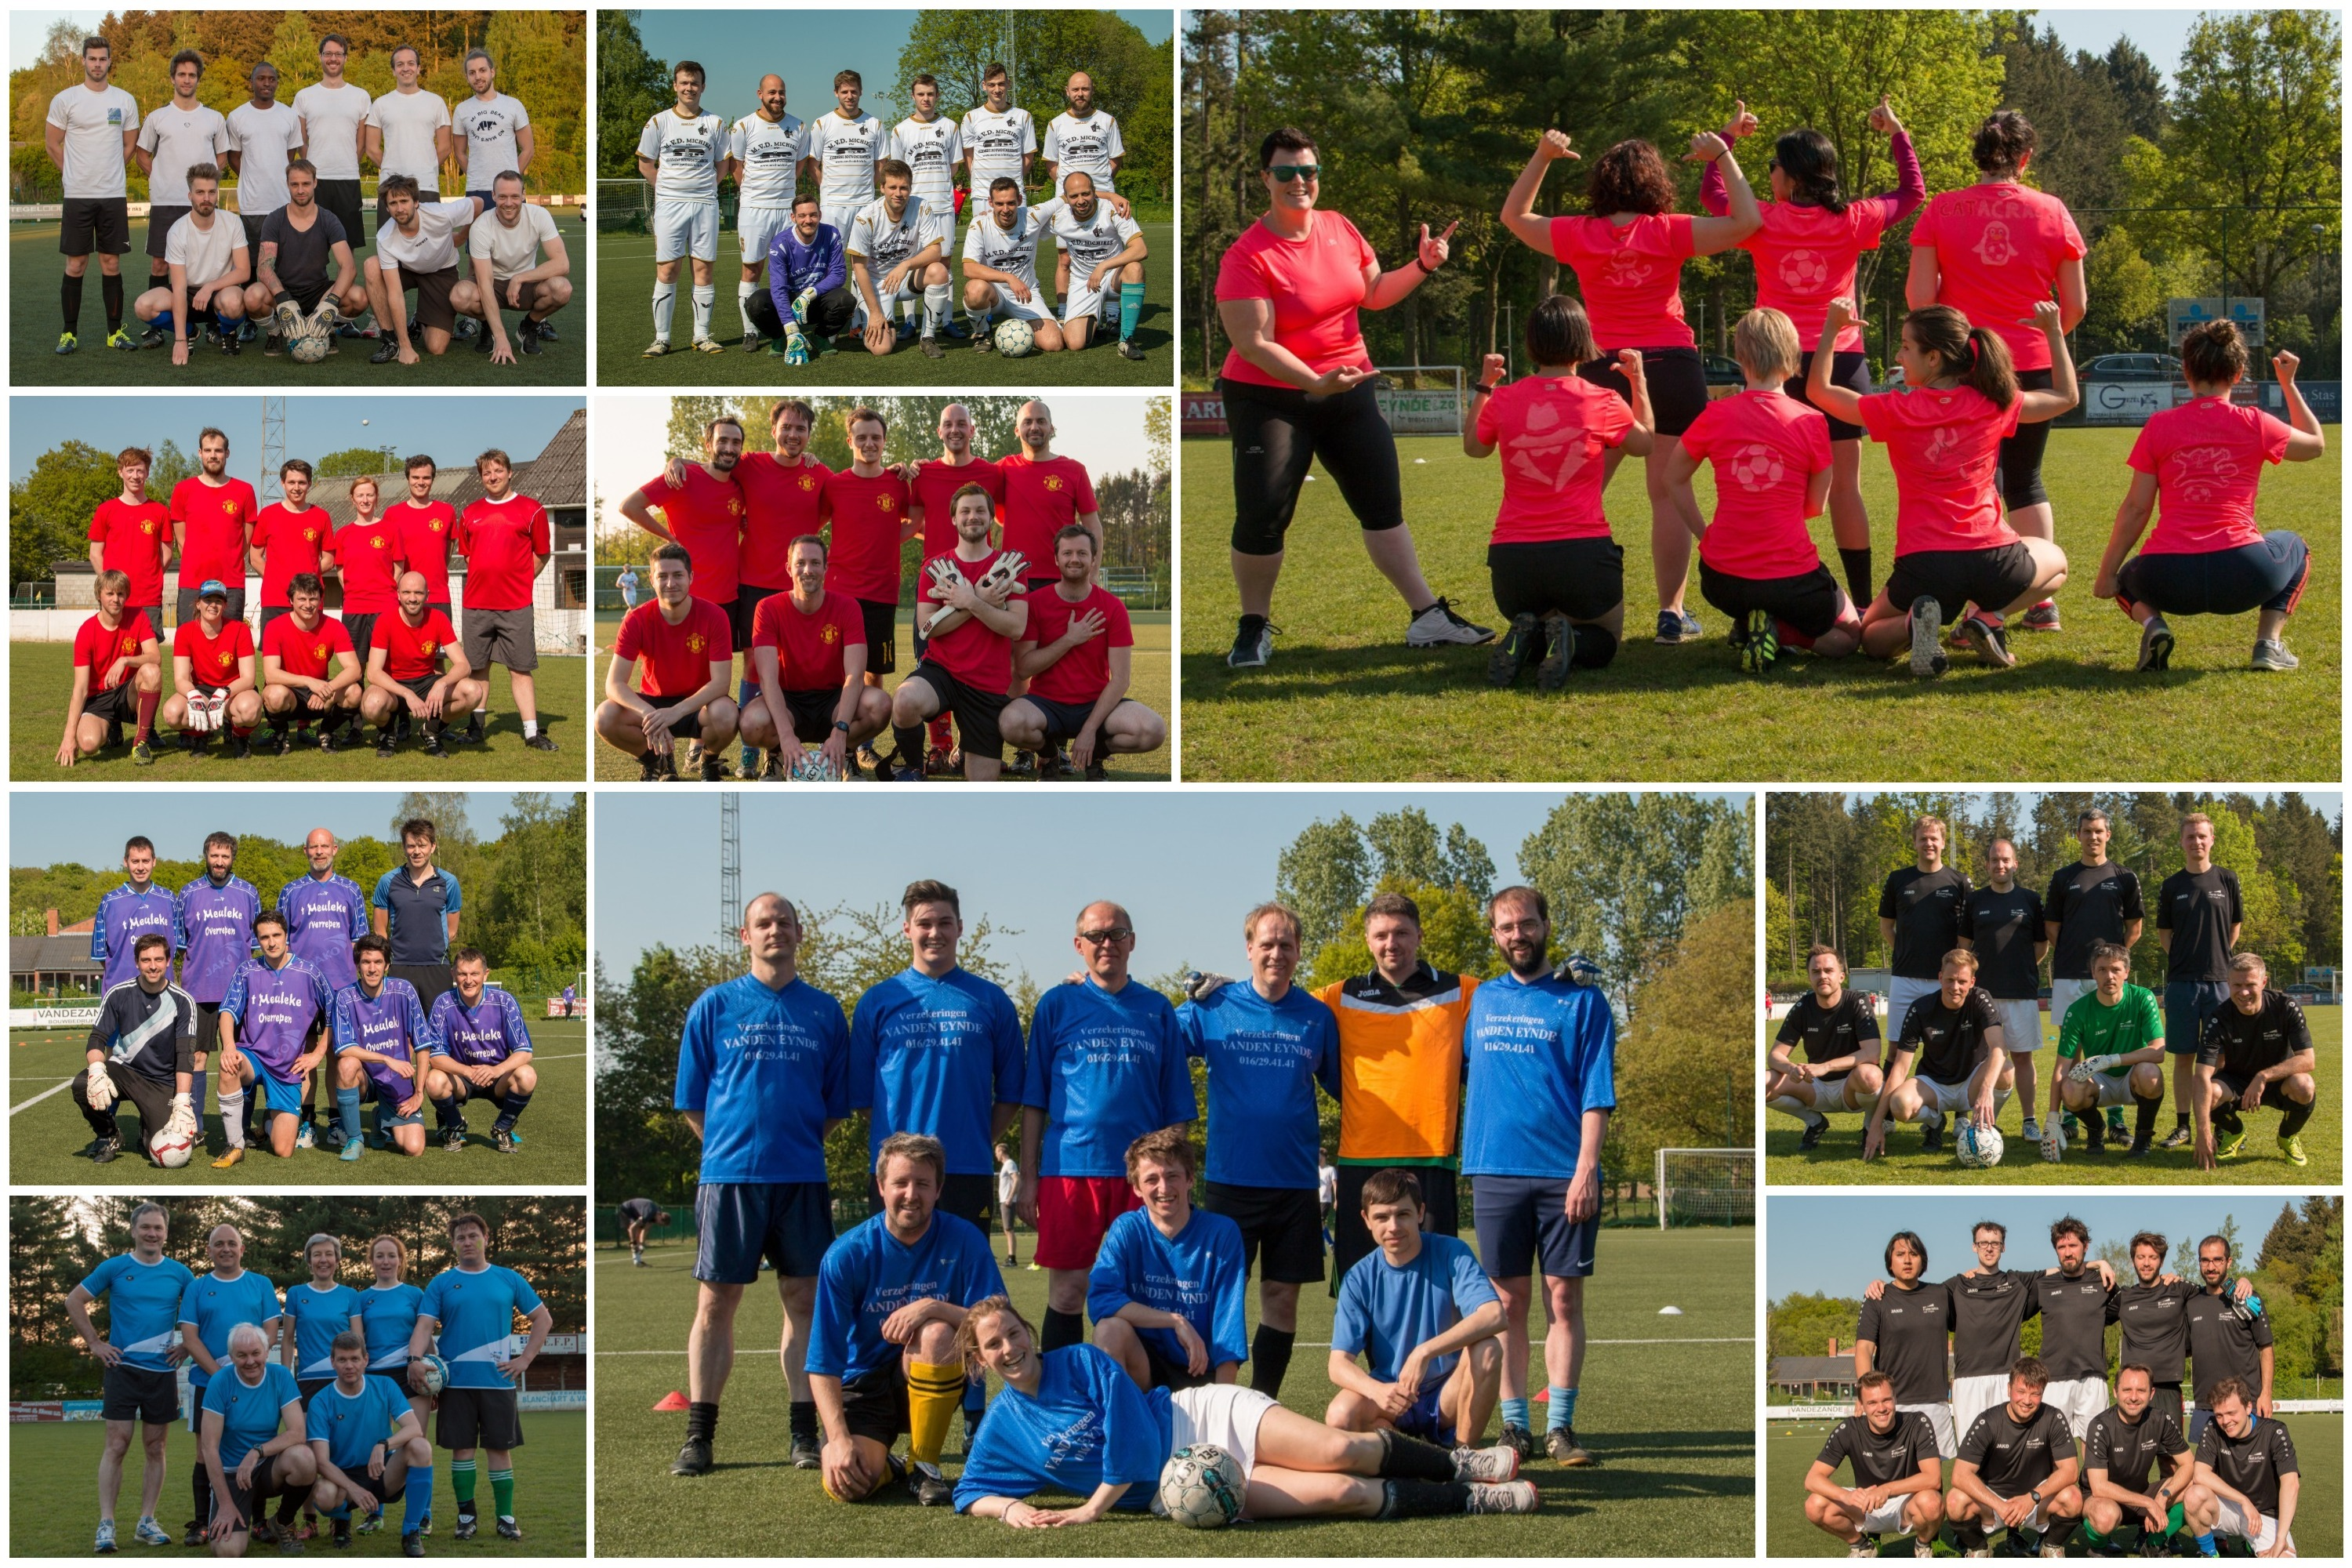 Football Mania Sweeps Materialise during Football Championships